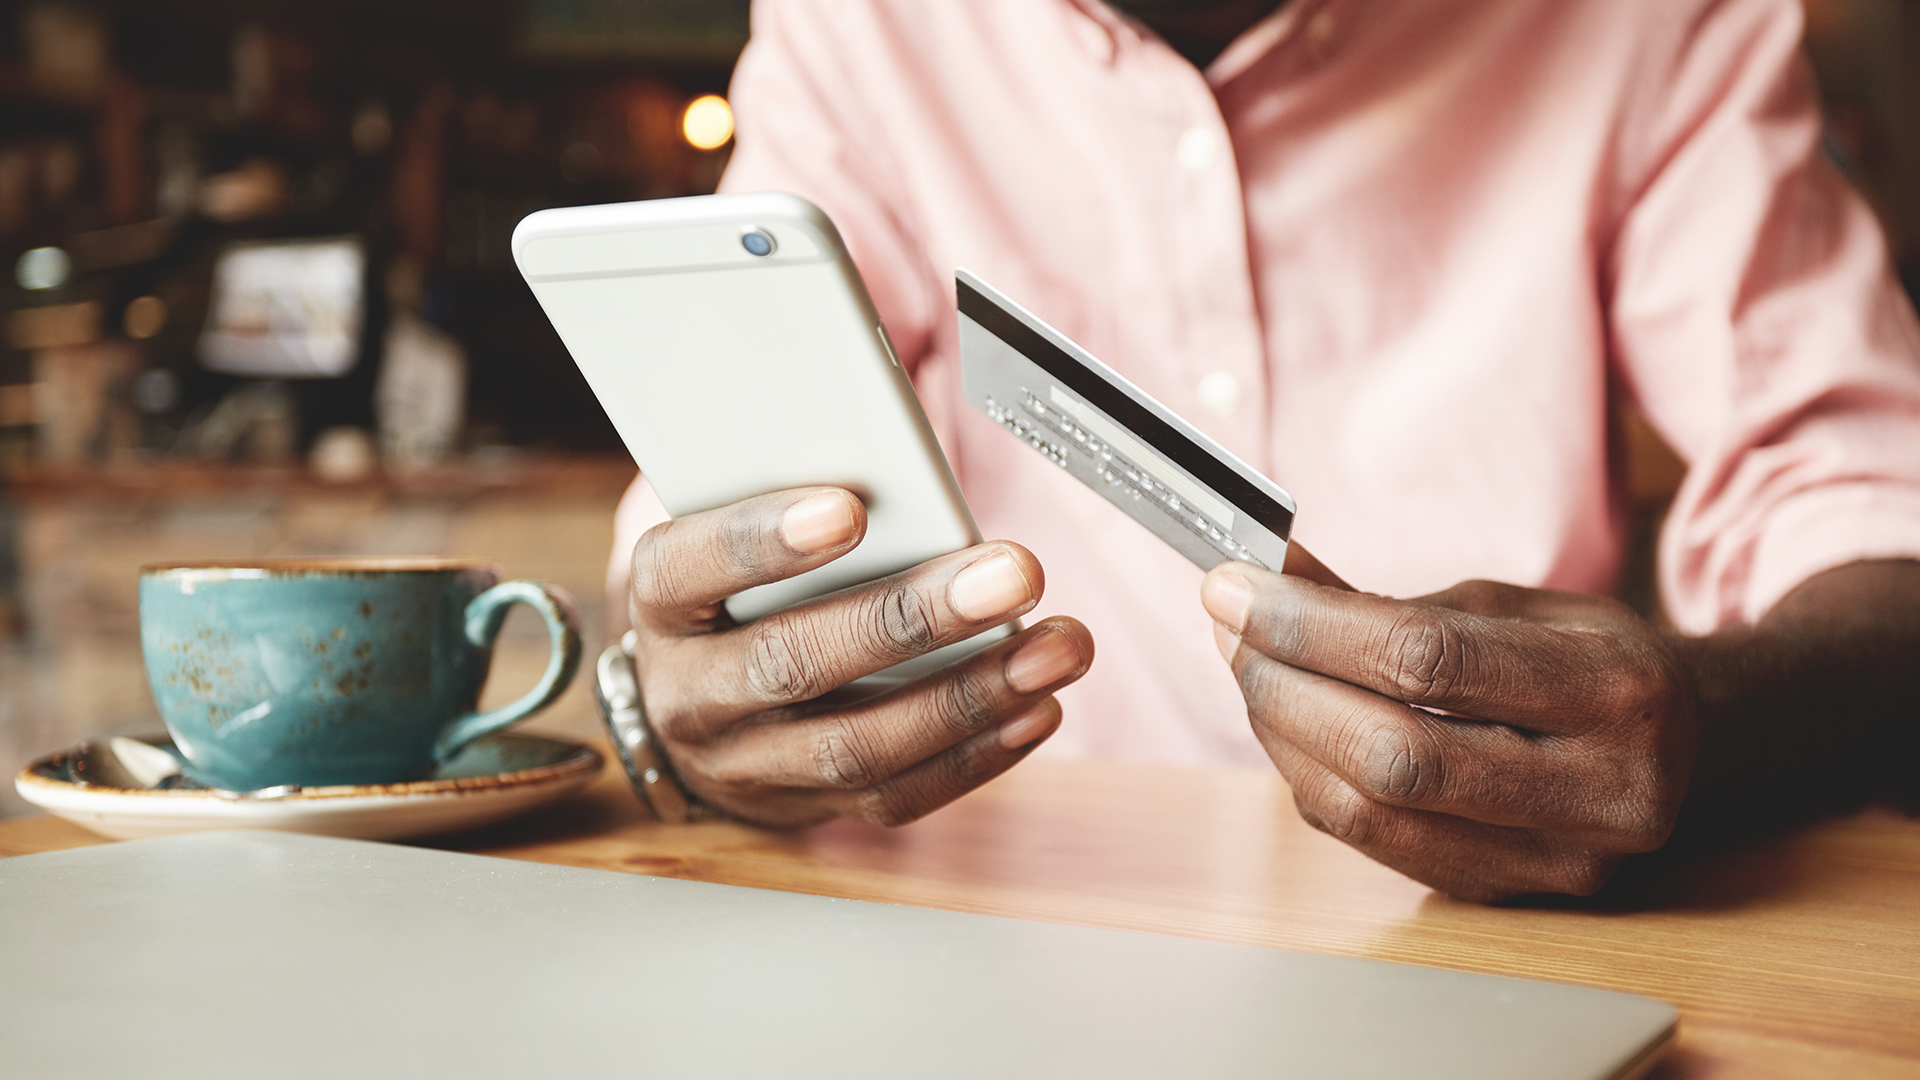 A man has been identified through consumer research as likely to purchase a given product and does so via his mobile phone and credit card